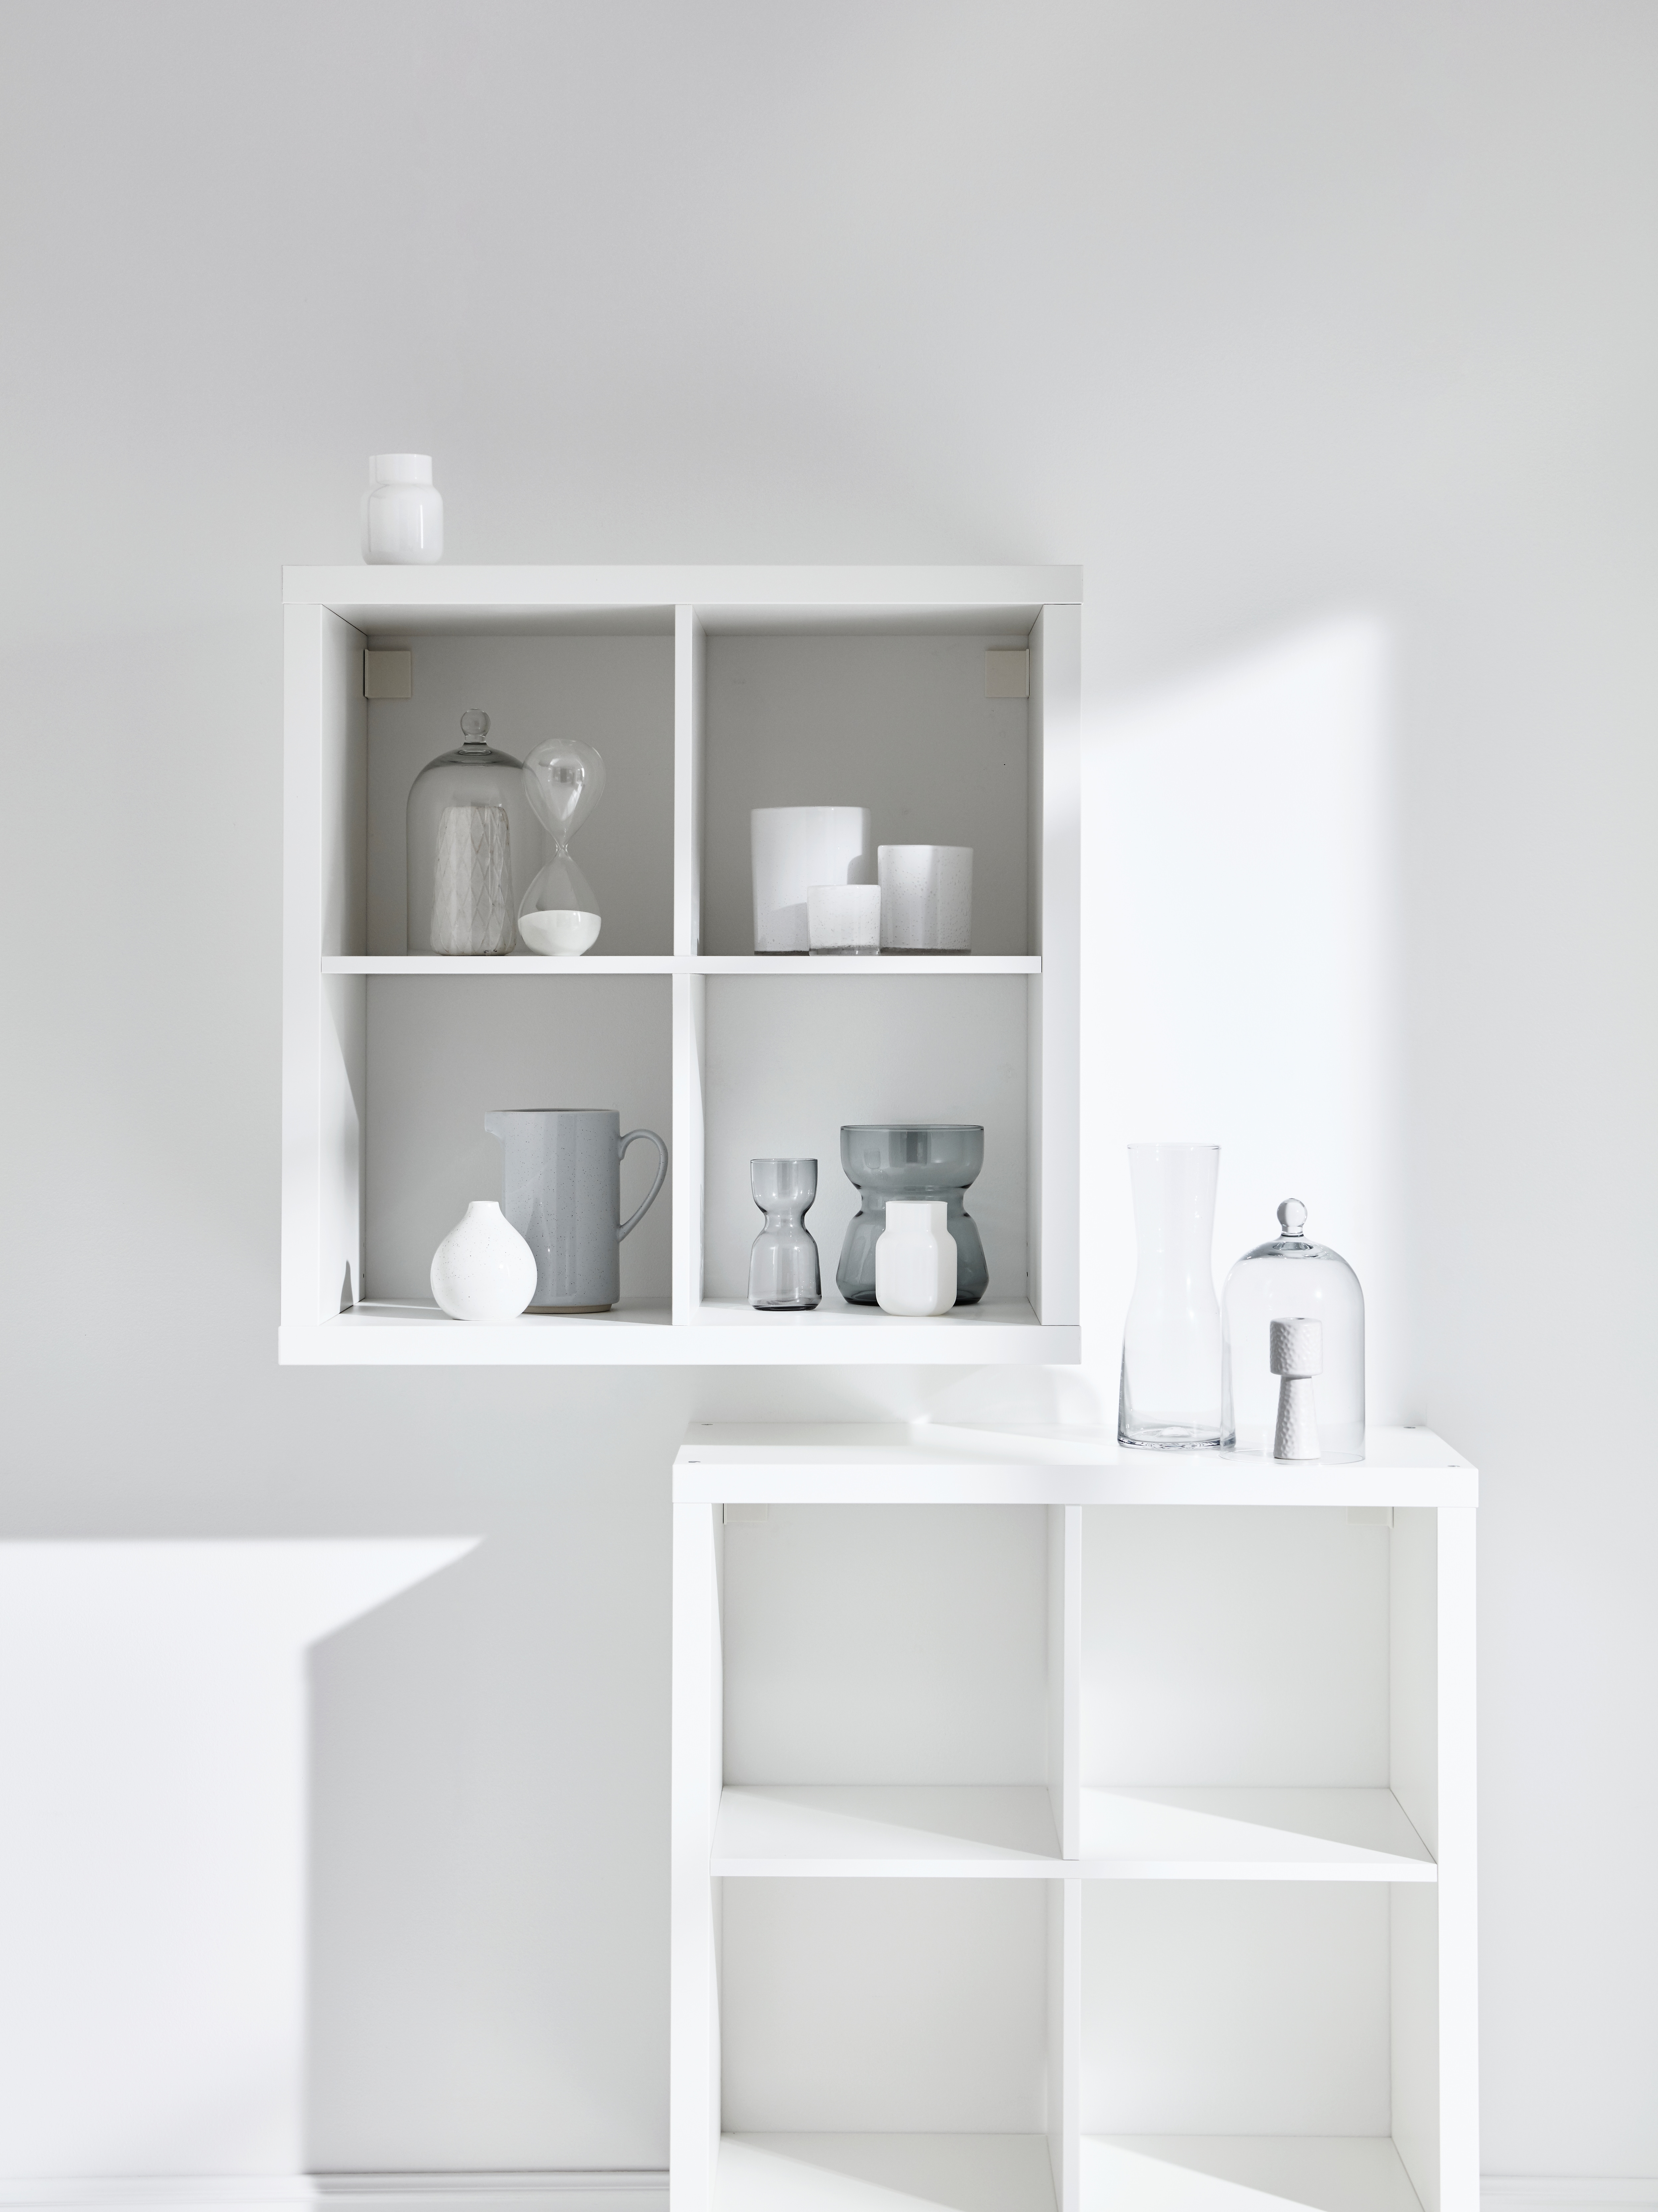 A cube-style, white KALLAX shelving unit is mounted on a wall, holding jars and pots. An identical, empty unit sits below.